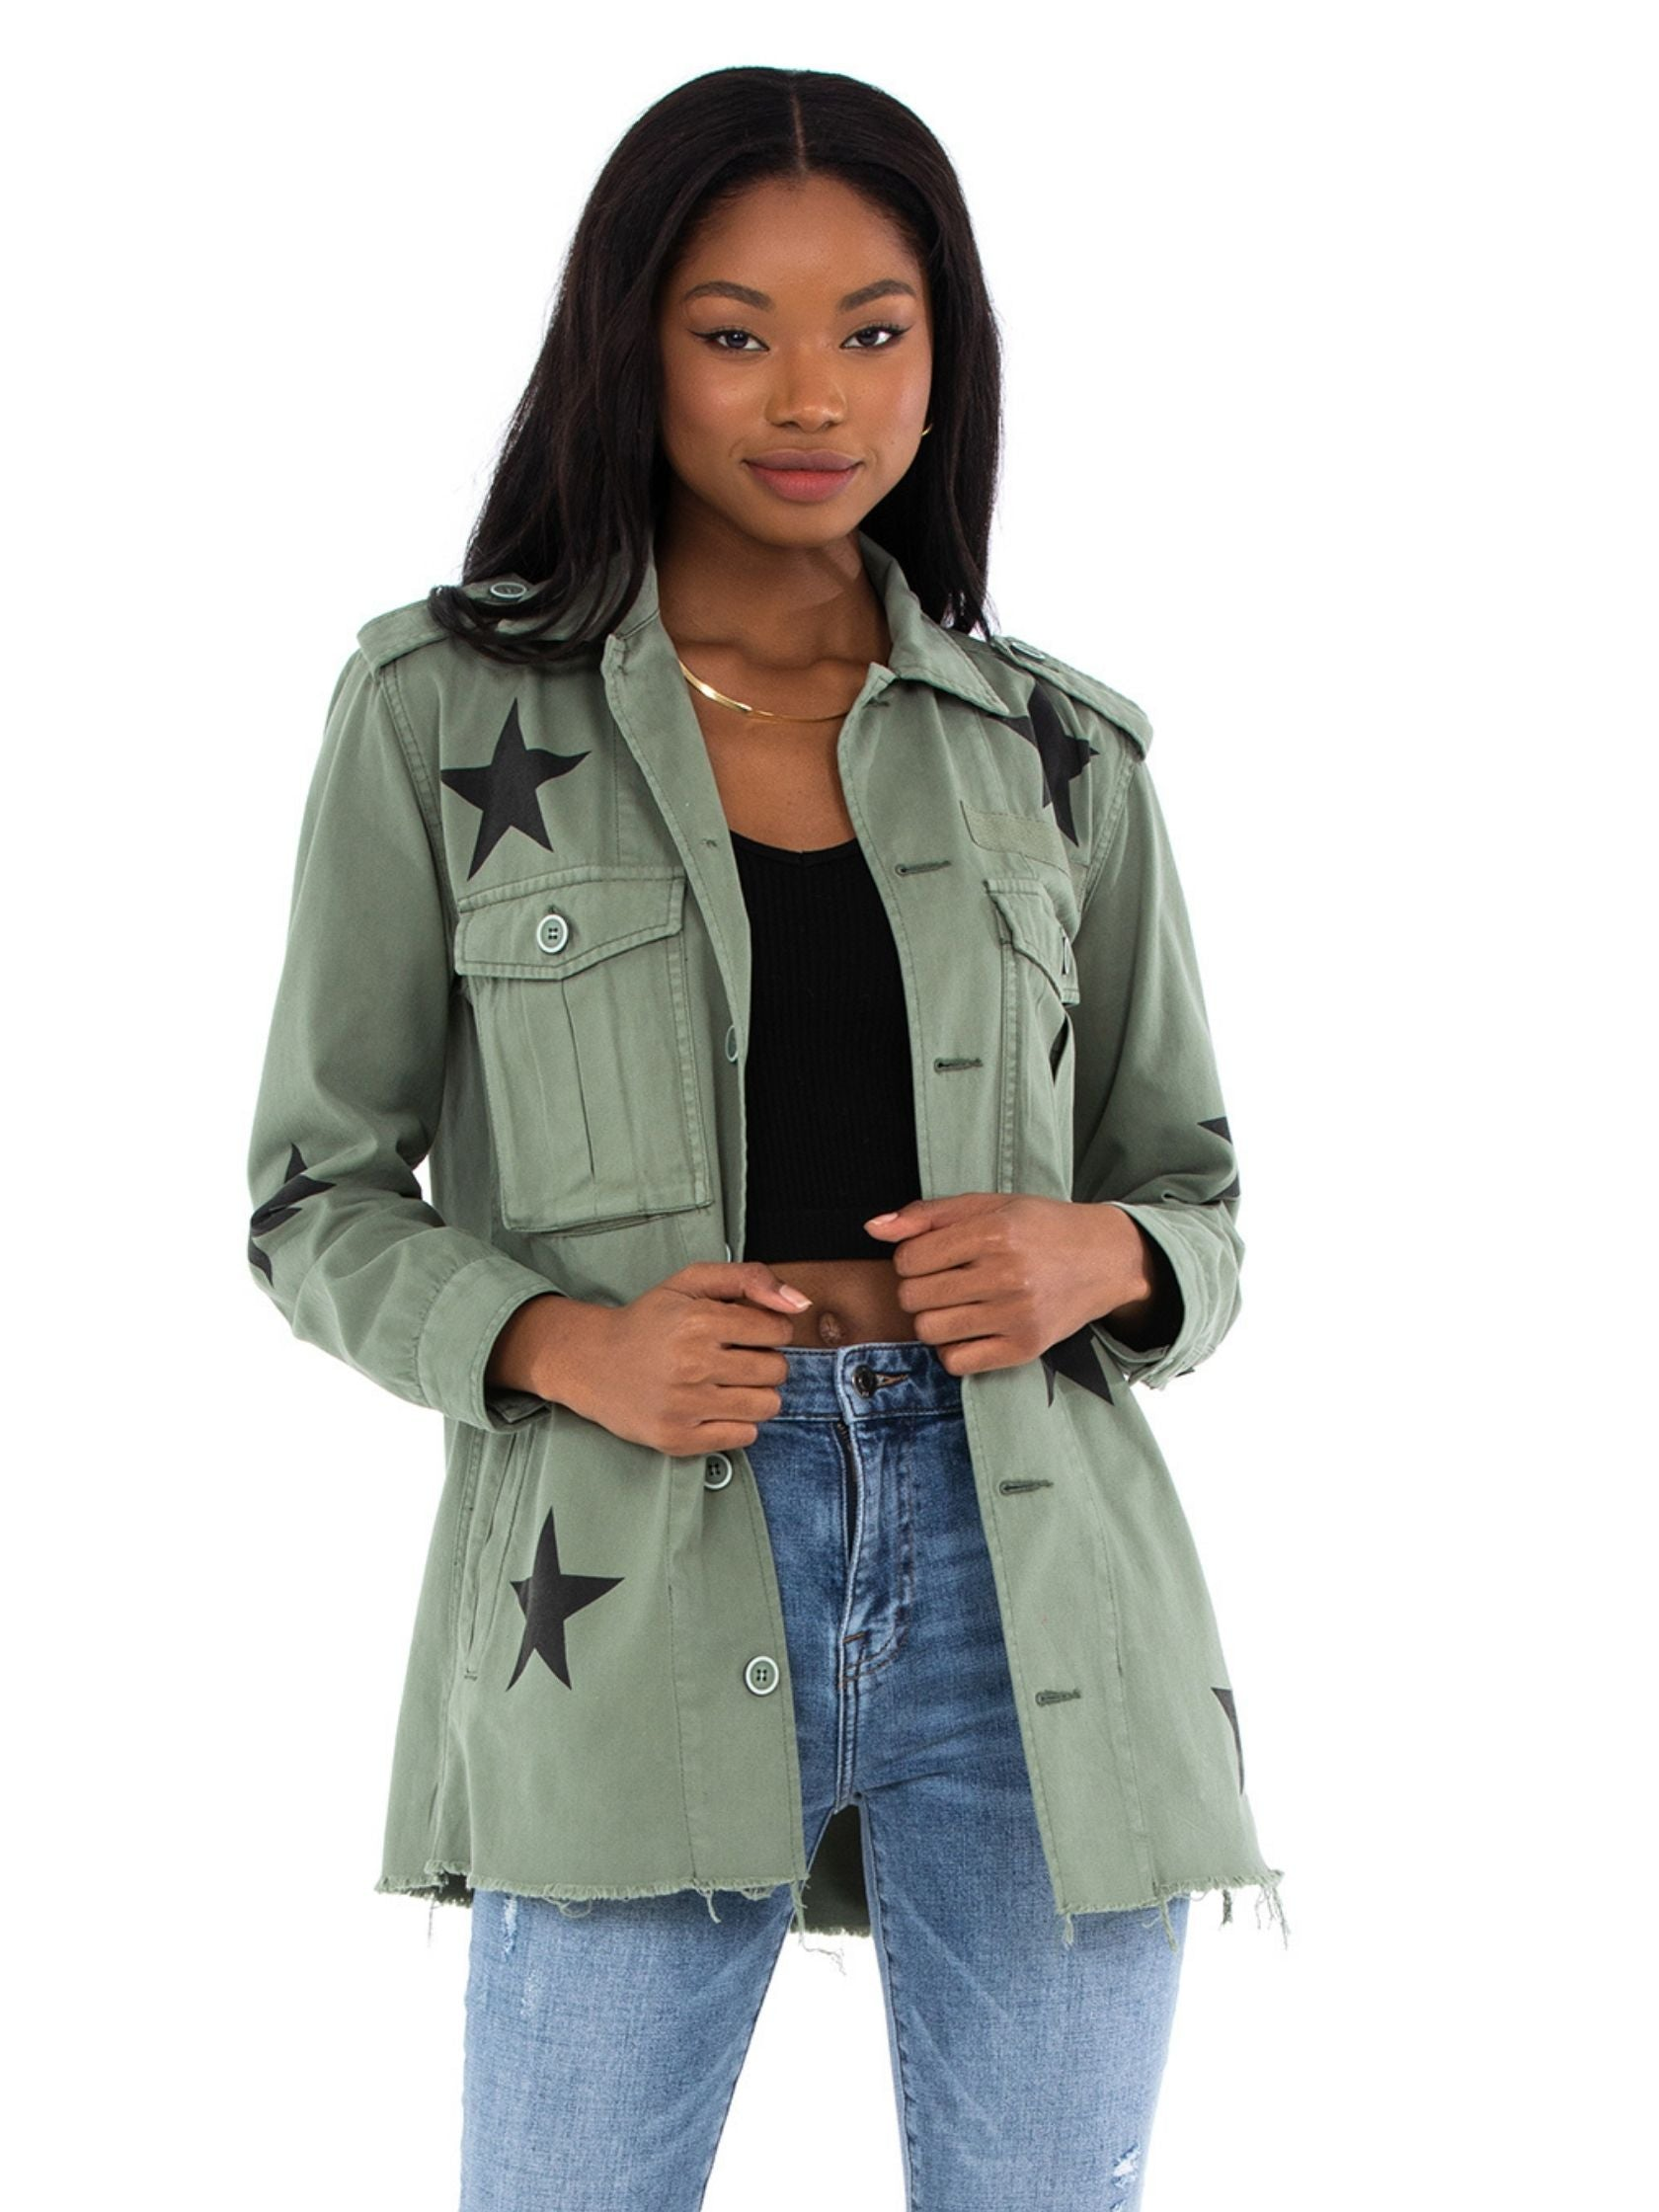 Girl wearing a jacket rental from PISTOLA called Camilo Royal Honor Jacket